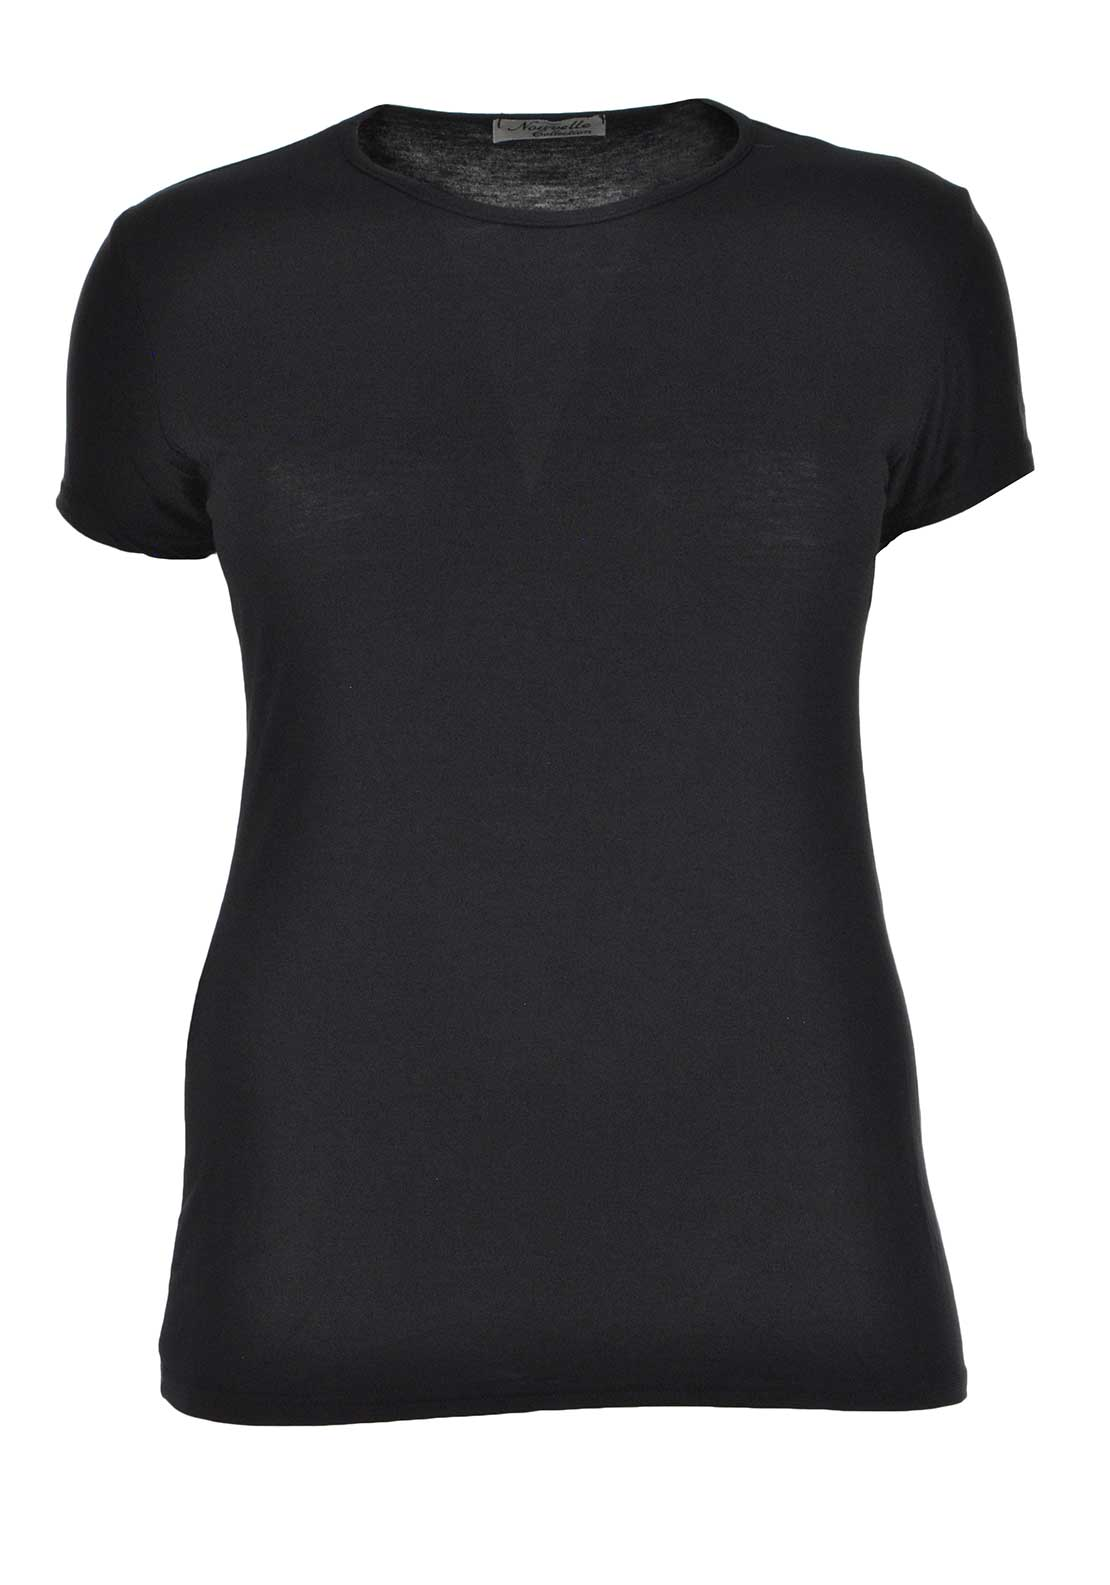 Lovedrobe Basic Top, Black